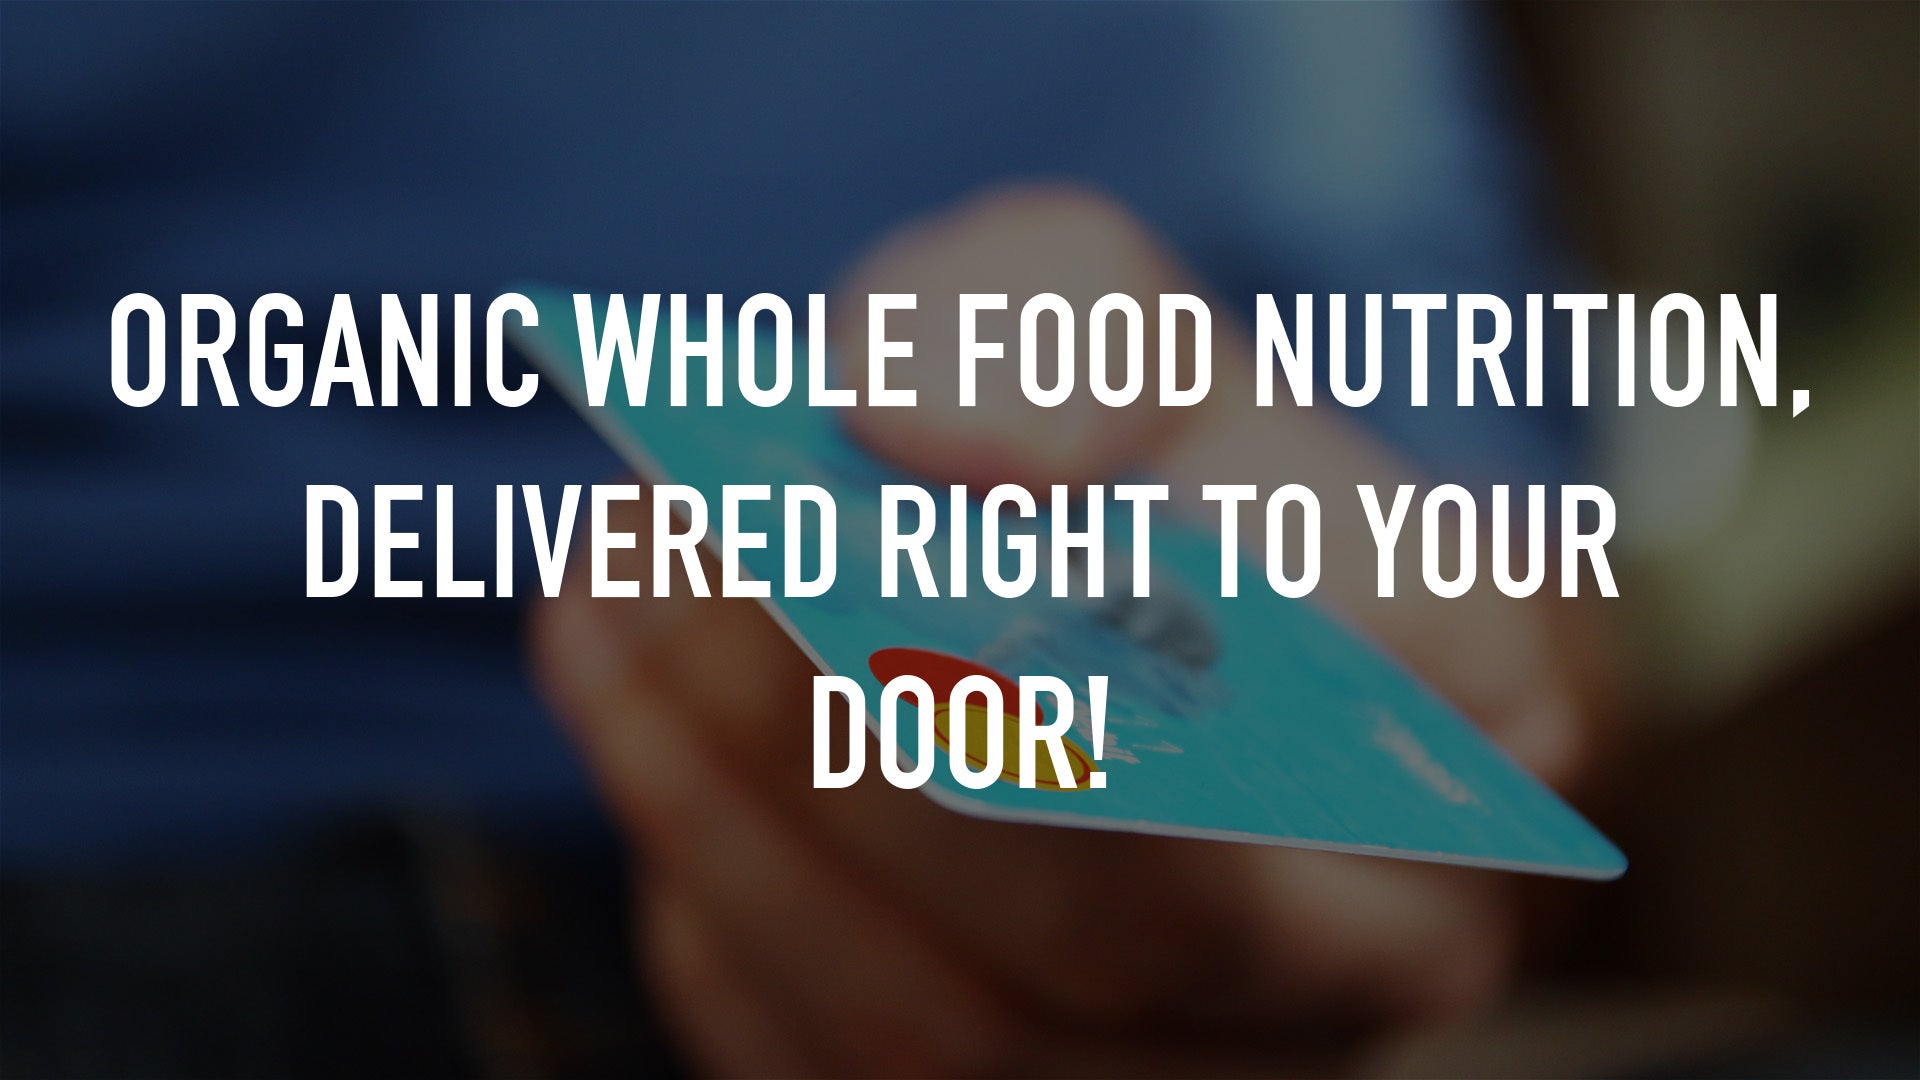 Organic Whole Food Nutrition, delivered right to your door!